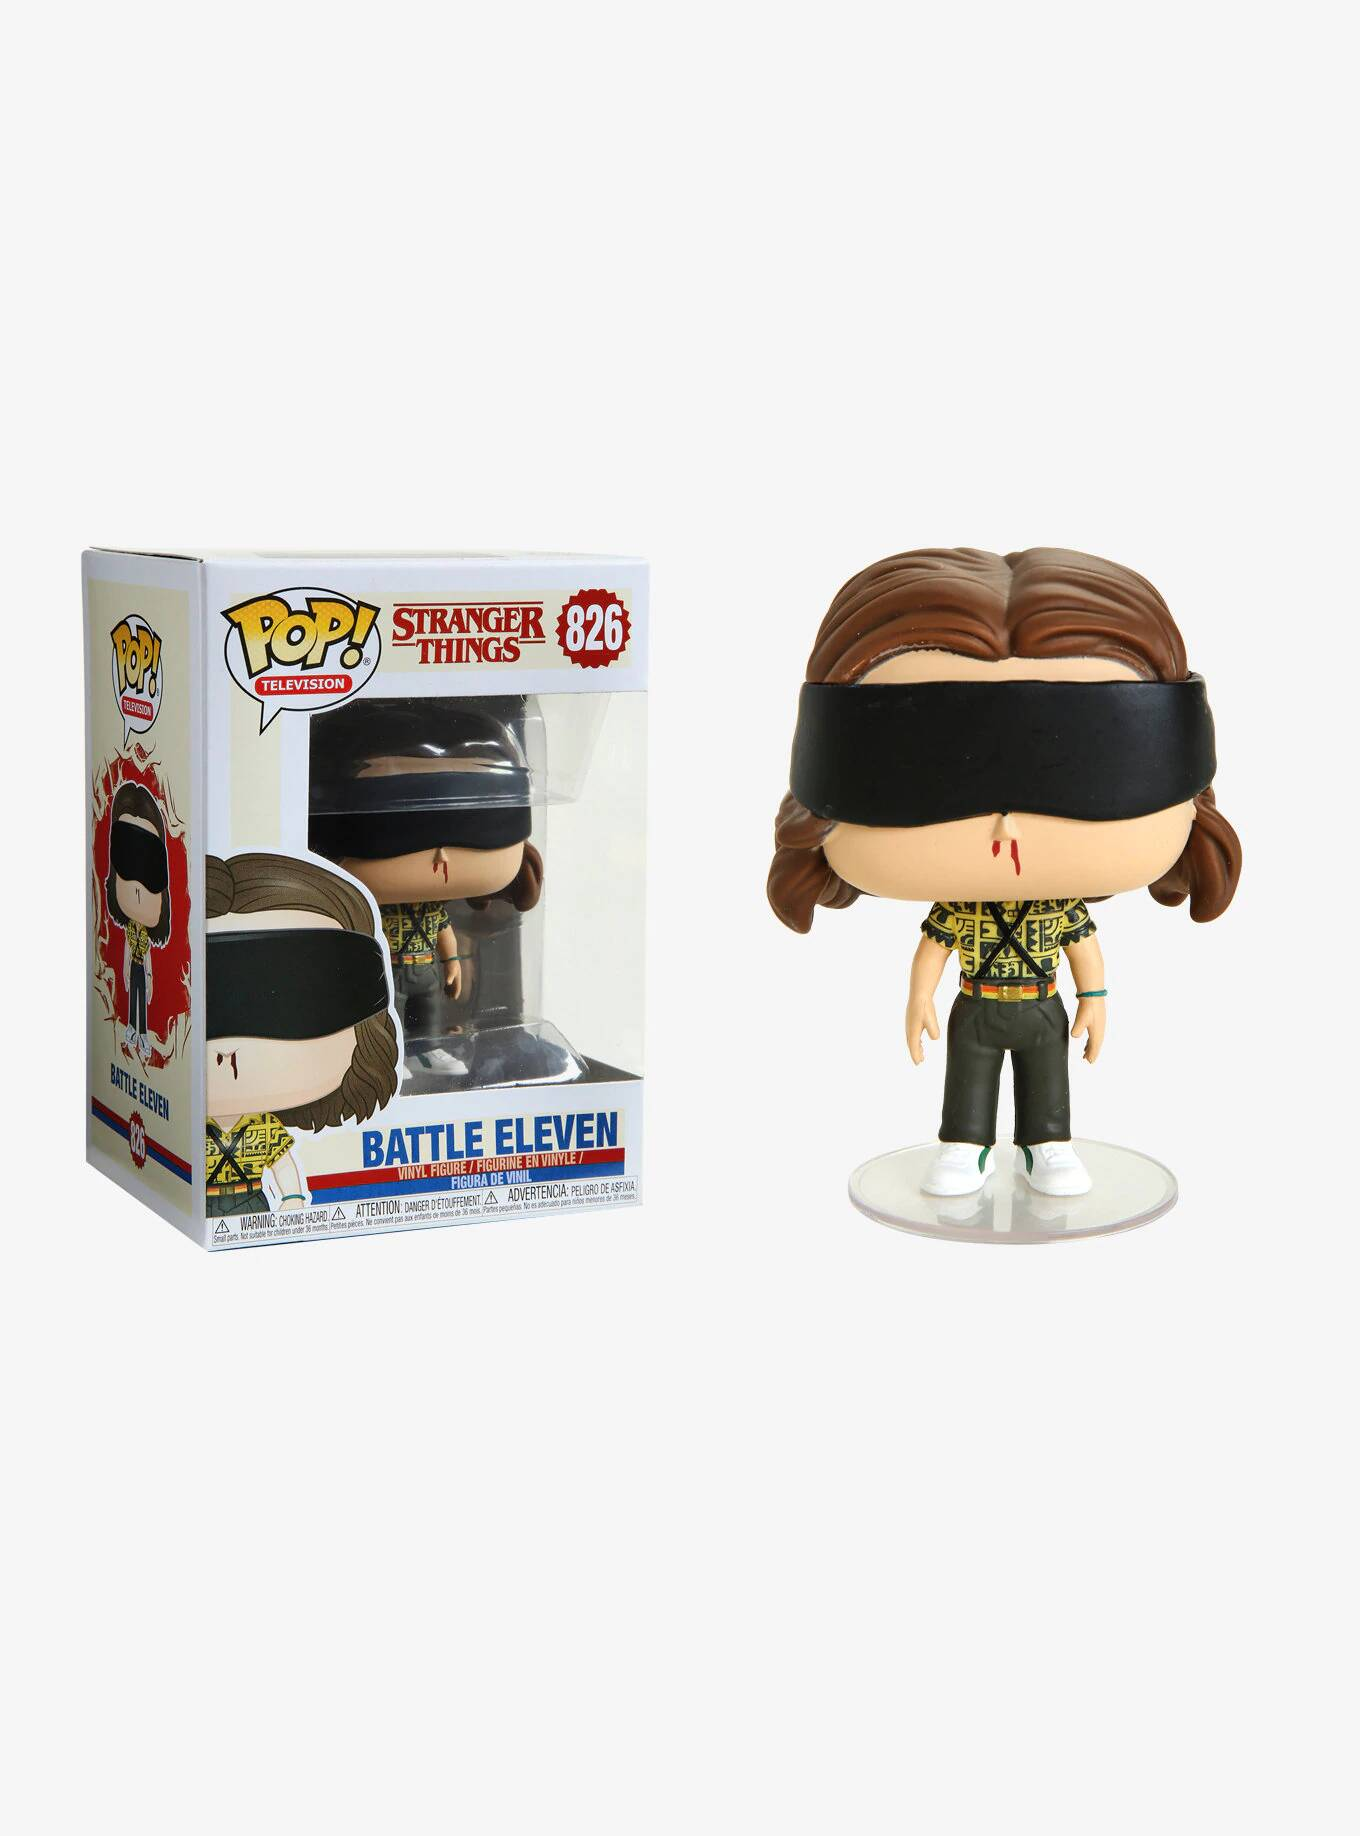 Funko Pop 826 - Battle Eleven - Stranger Things - 3ª Temporada  - Lançamento